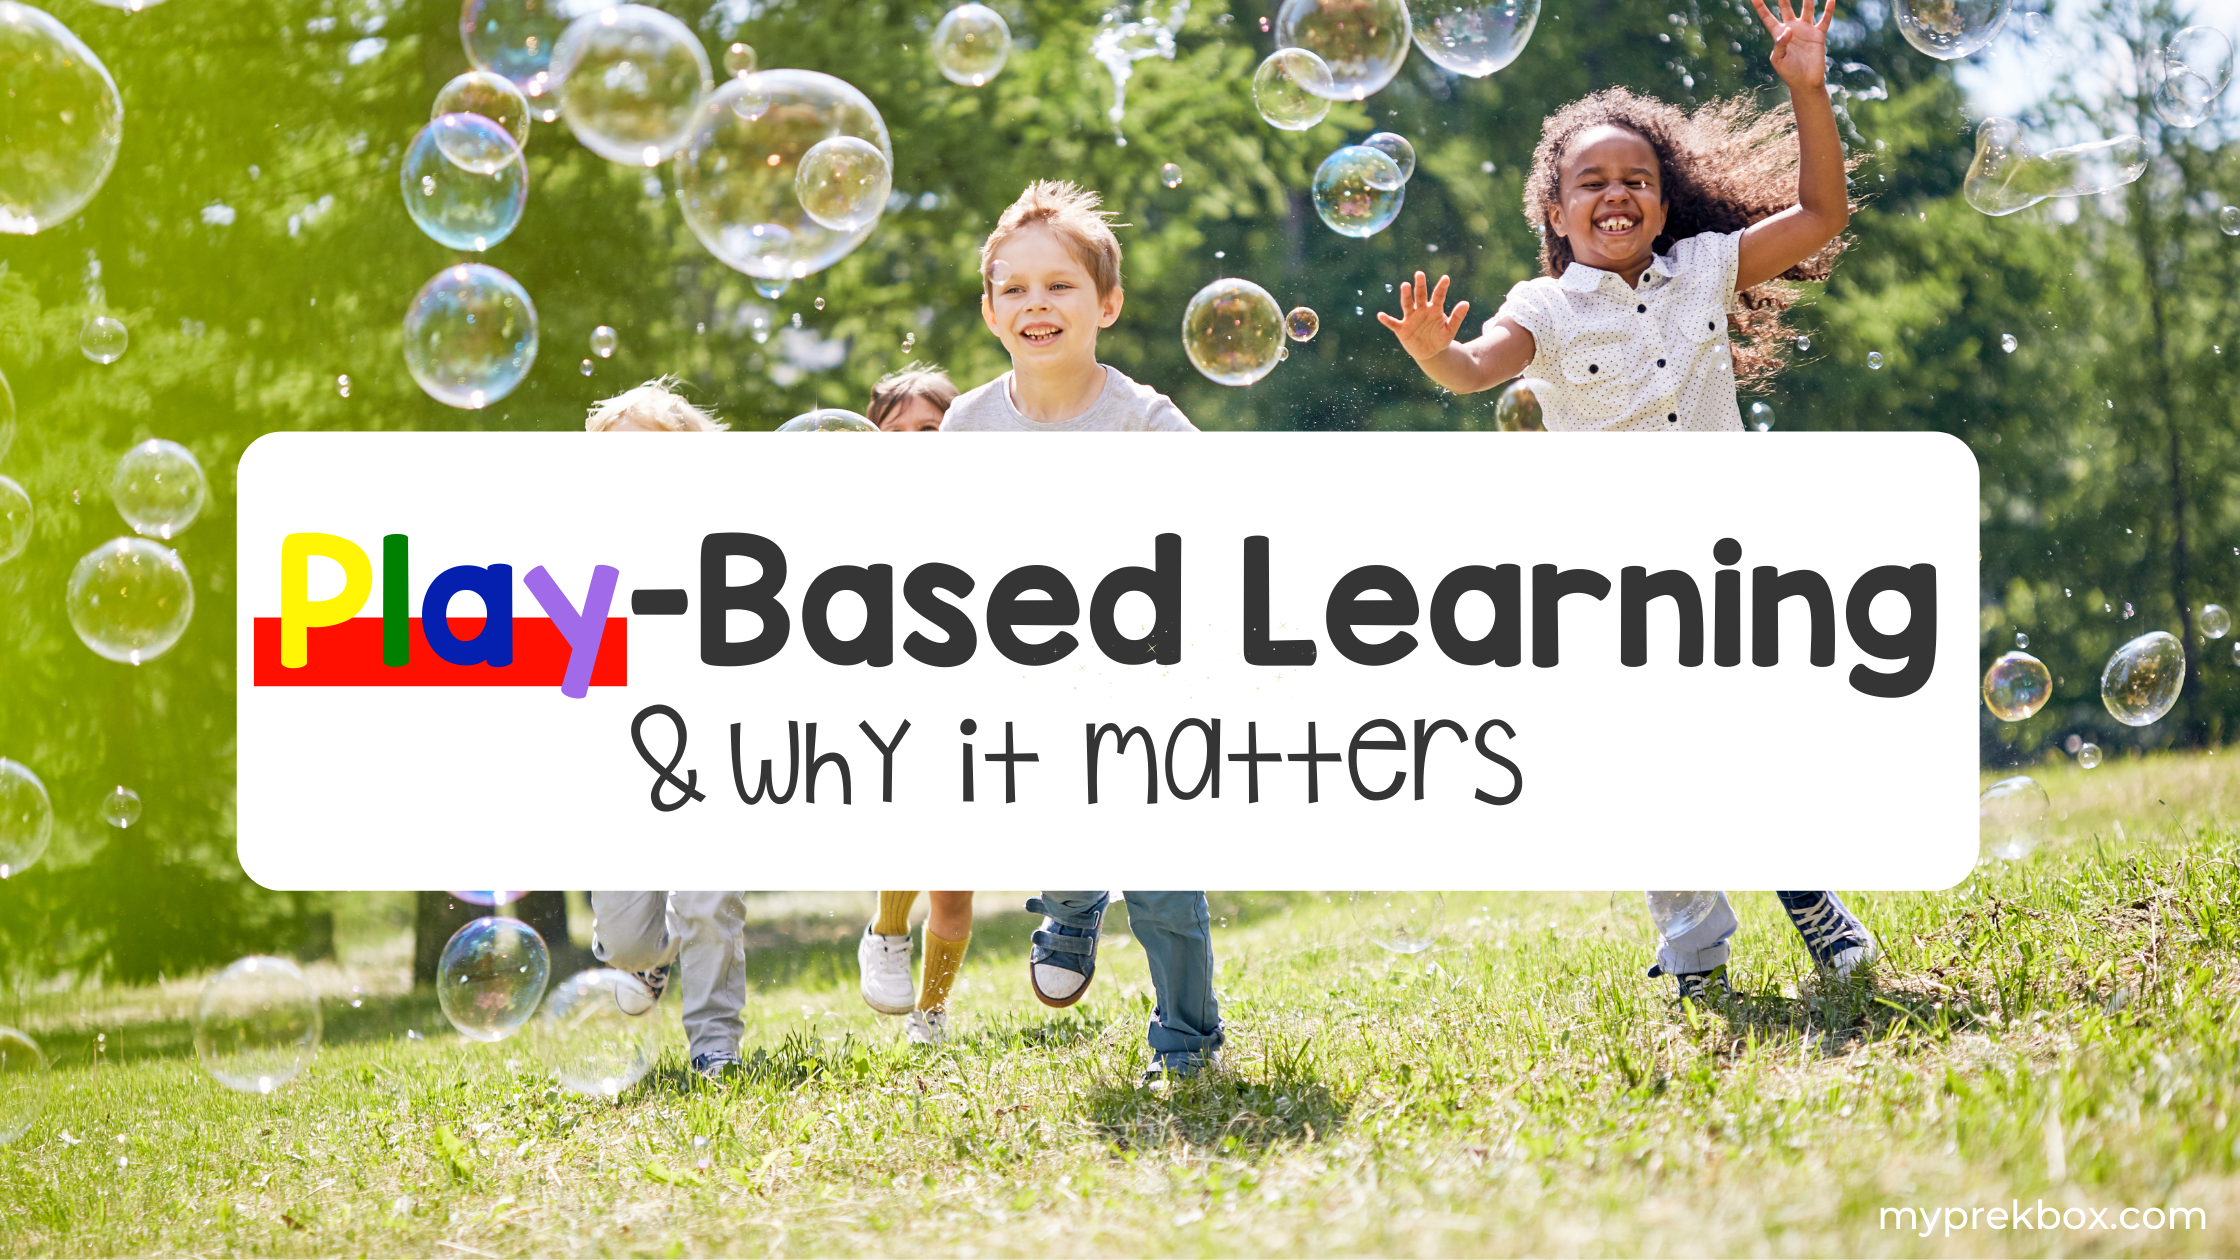 Play-Based Learning and Why it Matters